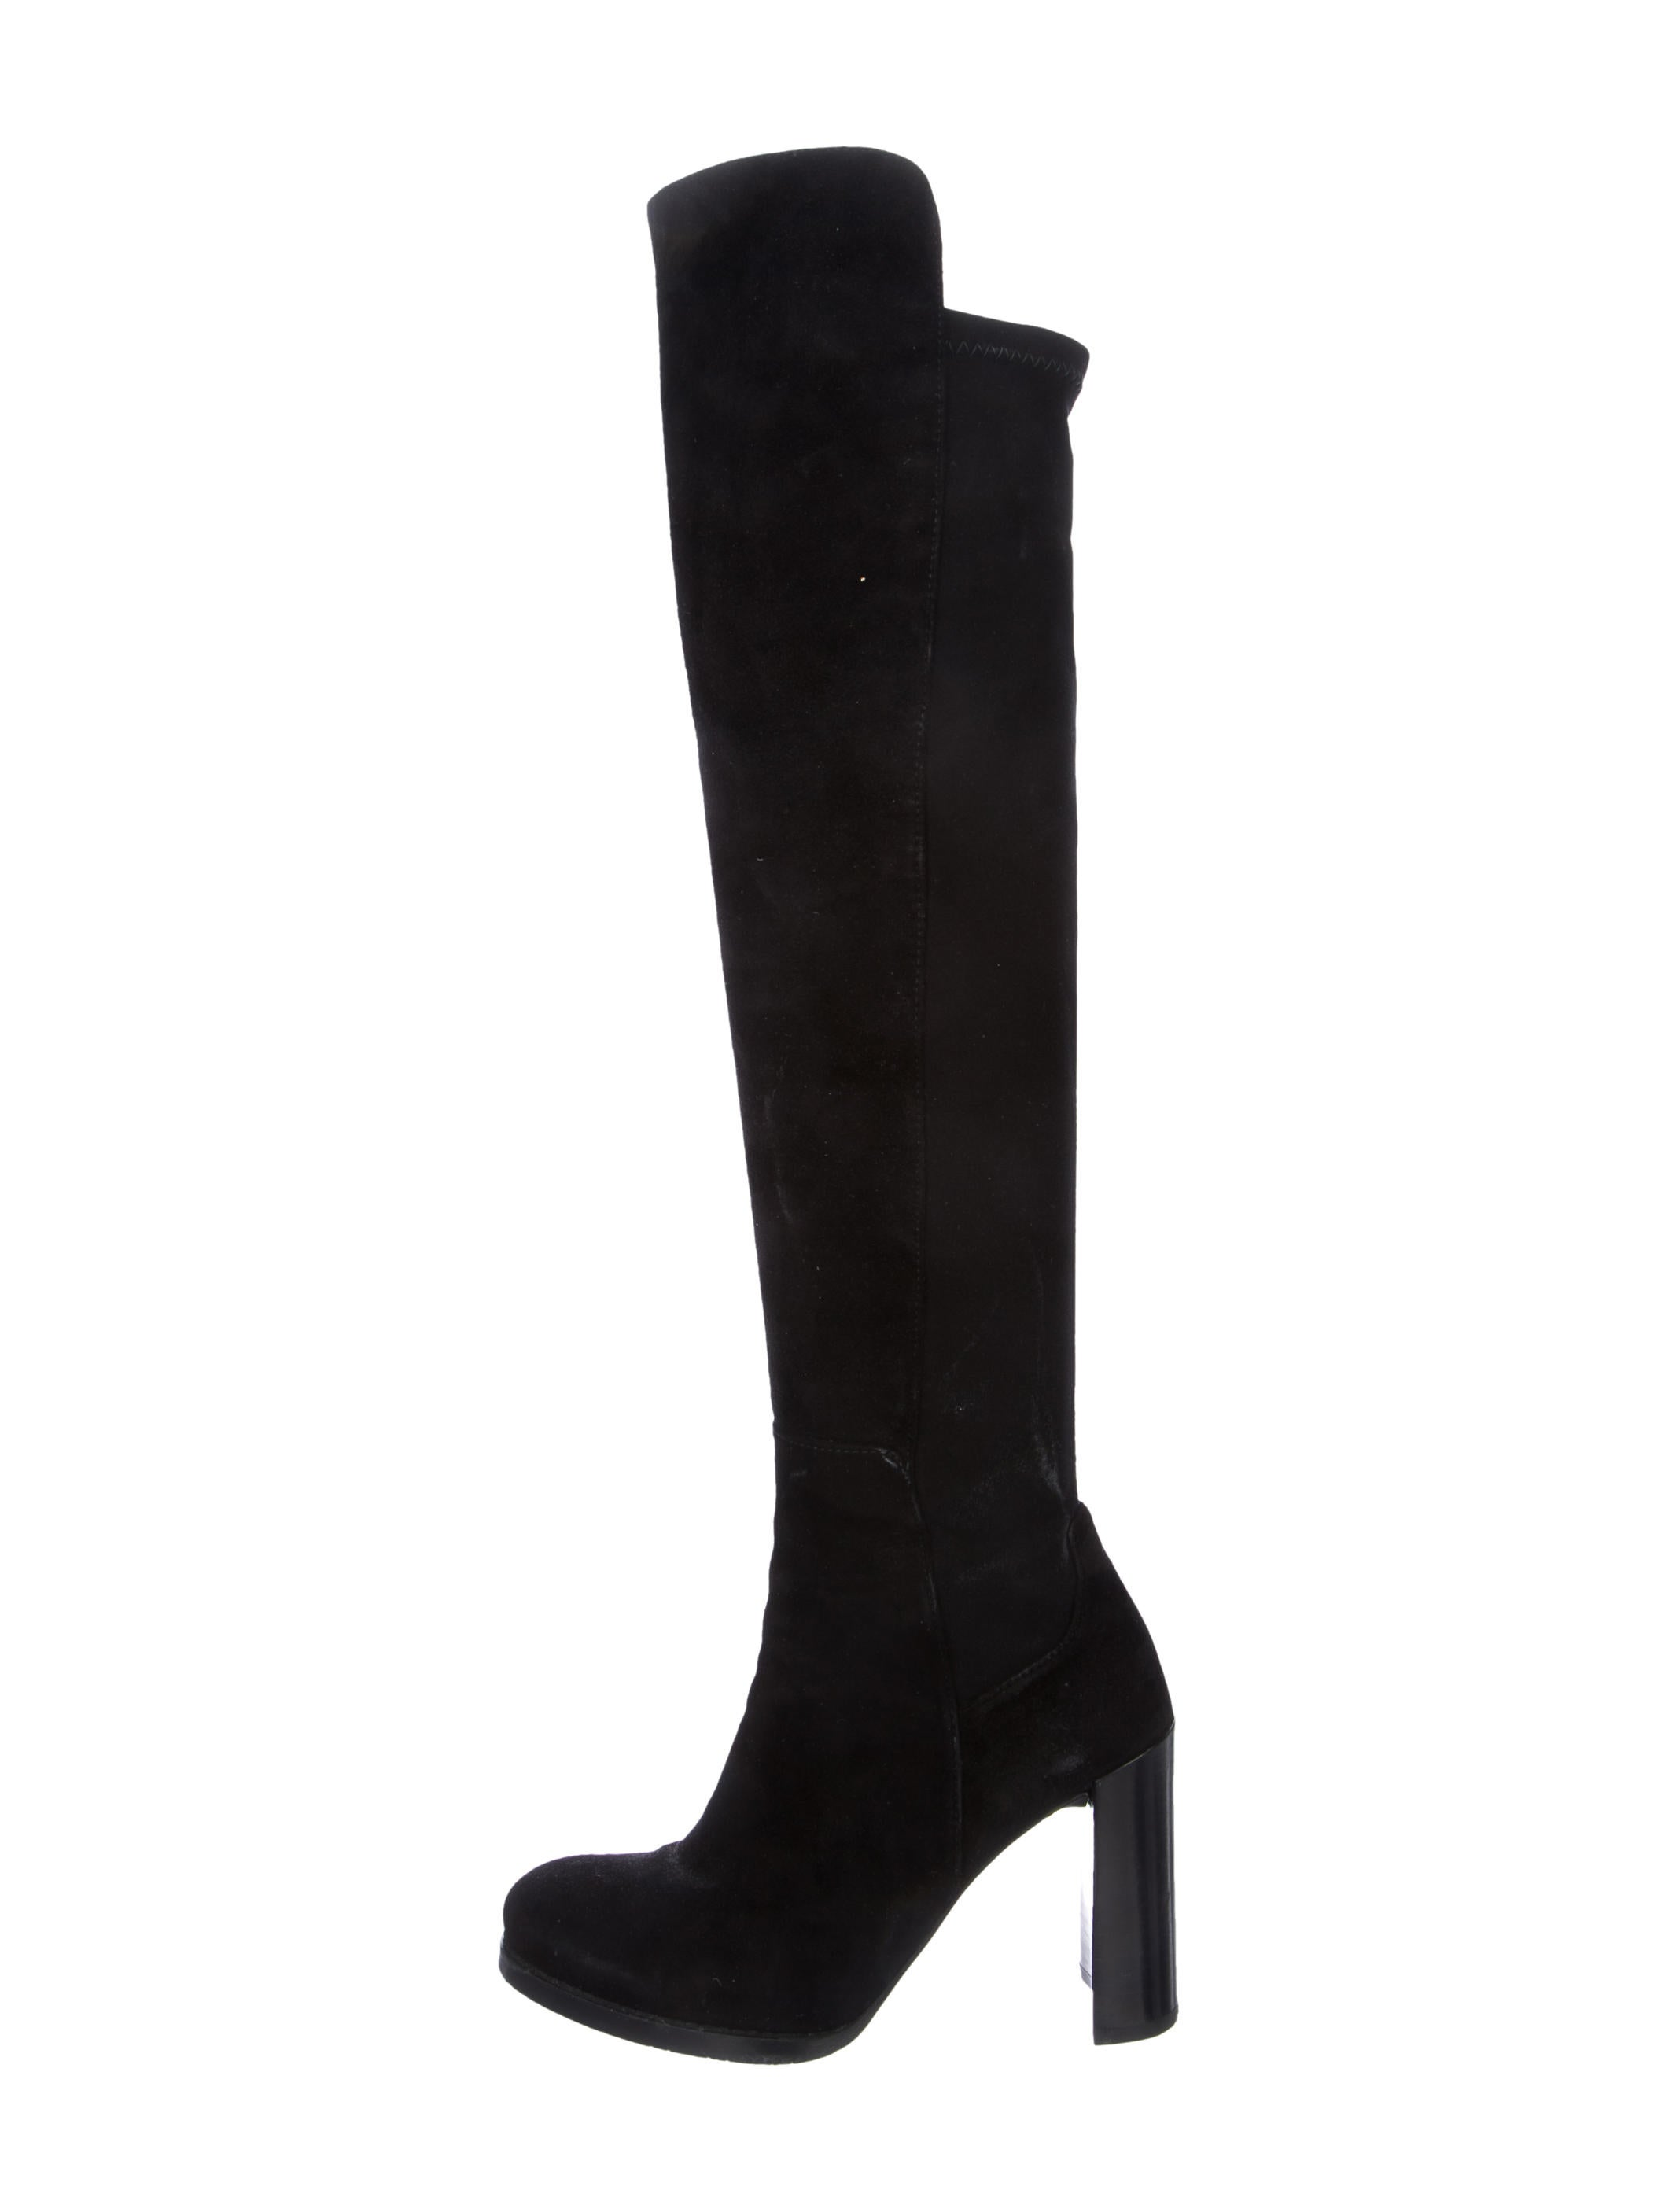 fake online Stuart Weitzman Leather Round-Toe Knee-High Boots browse for sale buy cheap marketable G4tVJa